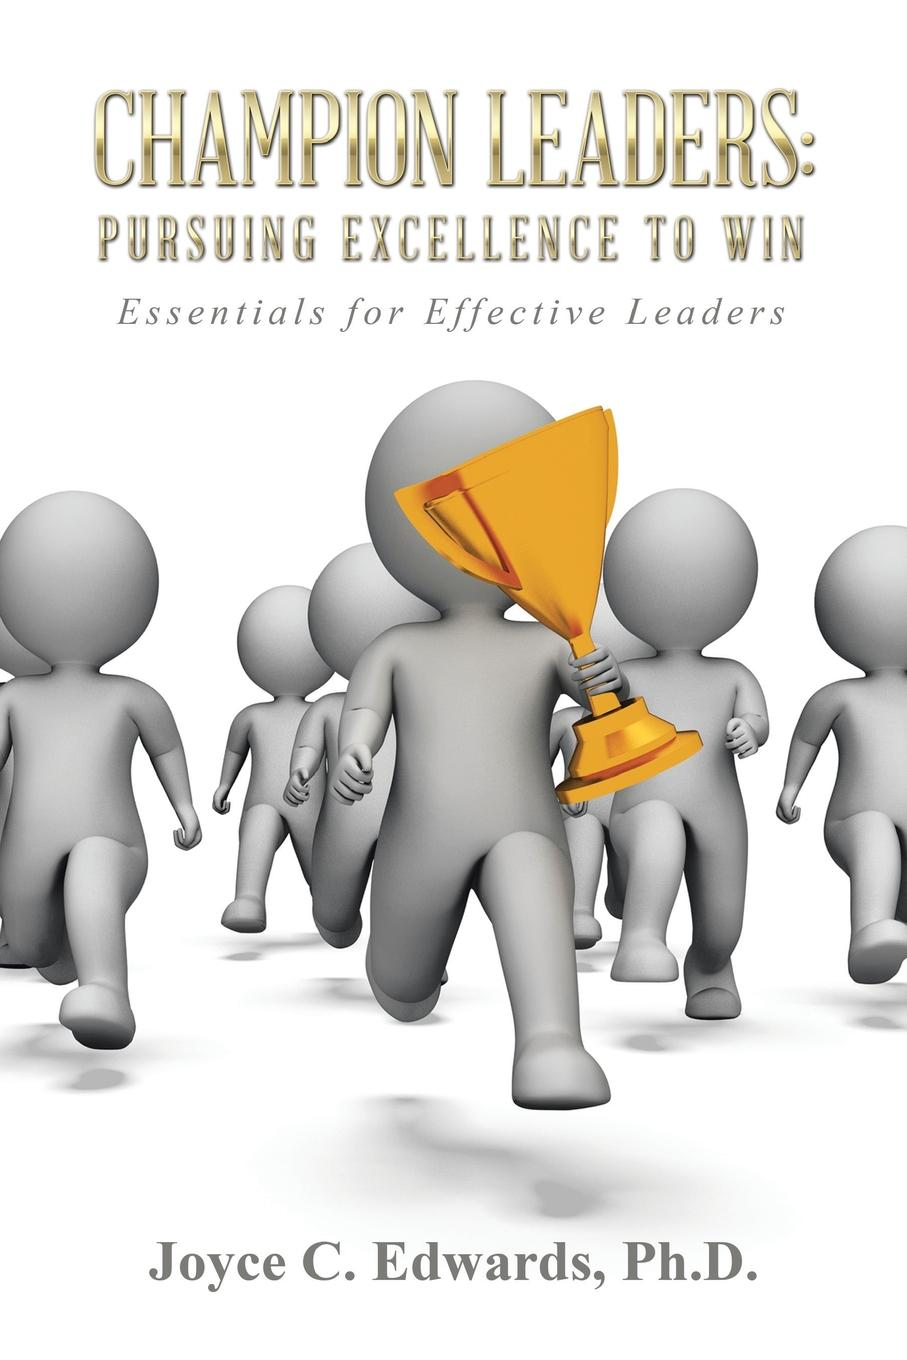 Ph.D. Joyce C. Edwards Champion Leaders. Pursuing Excellence to Win: Essentials for Effective Leaders finding the champion within